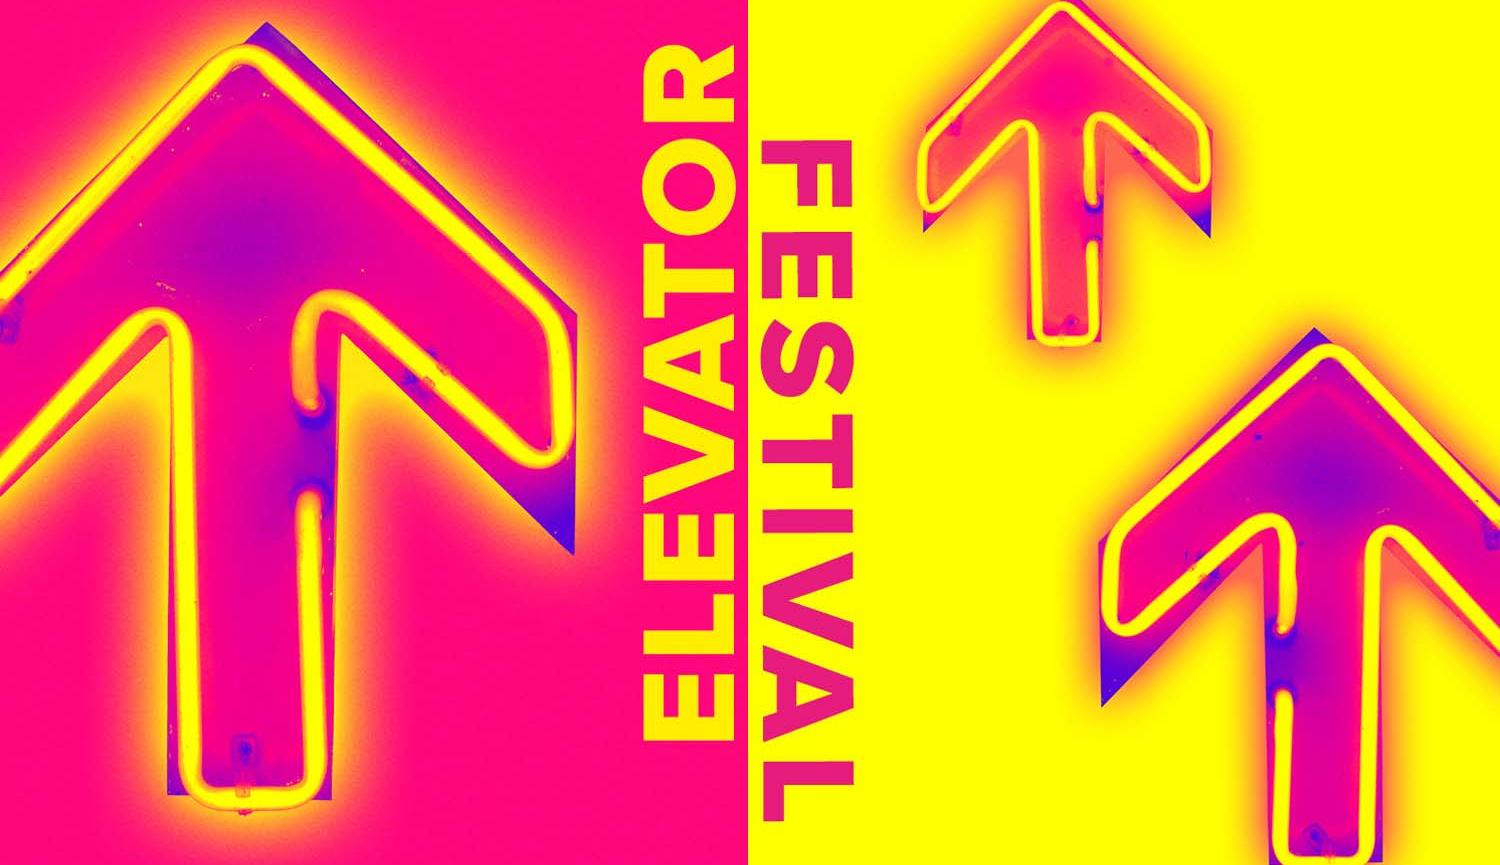 Elevator festival image of yellow neon arrow on pink background on left, 2 pink neon arrows on yellow background on right